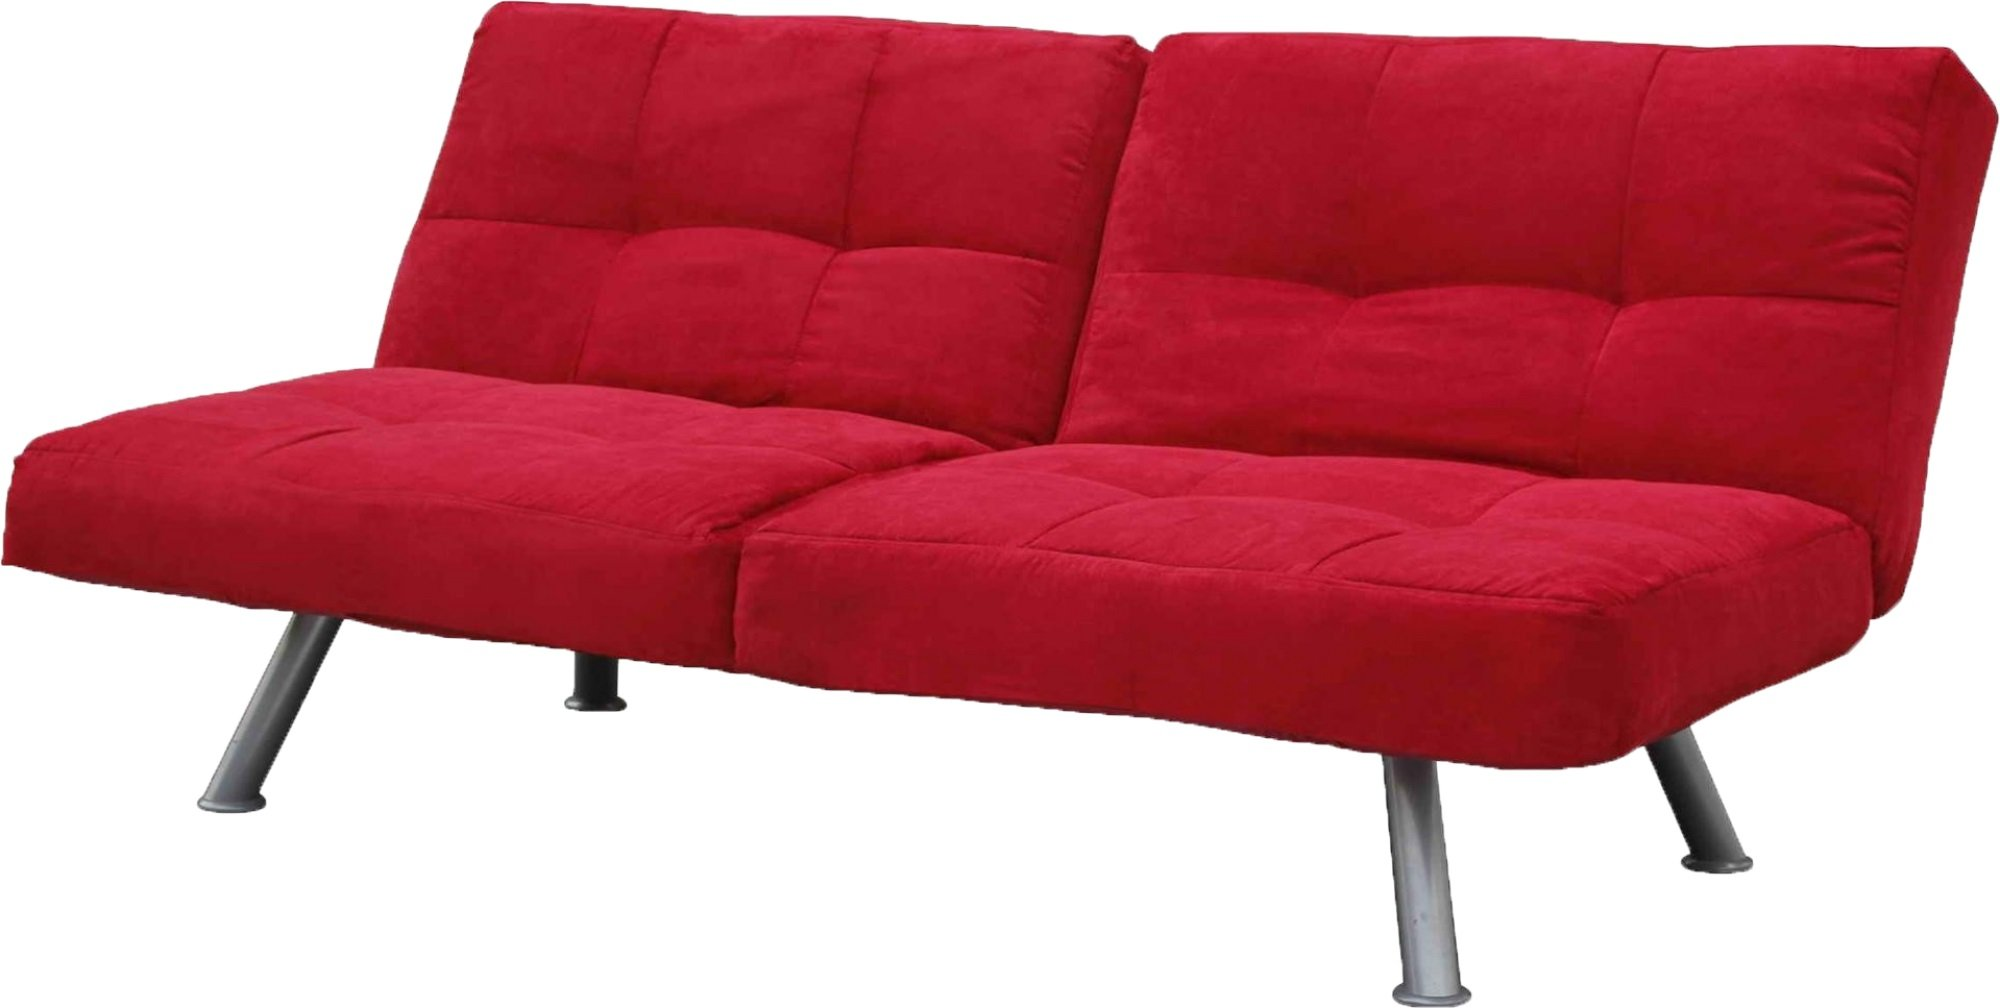 DHP Kaila Sofa Sleeper Convertible Futon Bed with Adjustable Armrests, Slanted Metal Legs and Splitback - Red